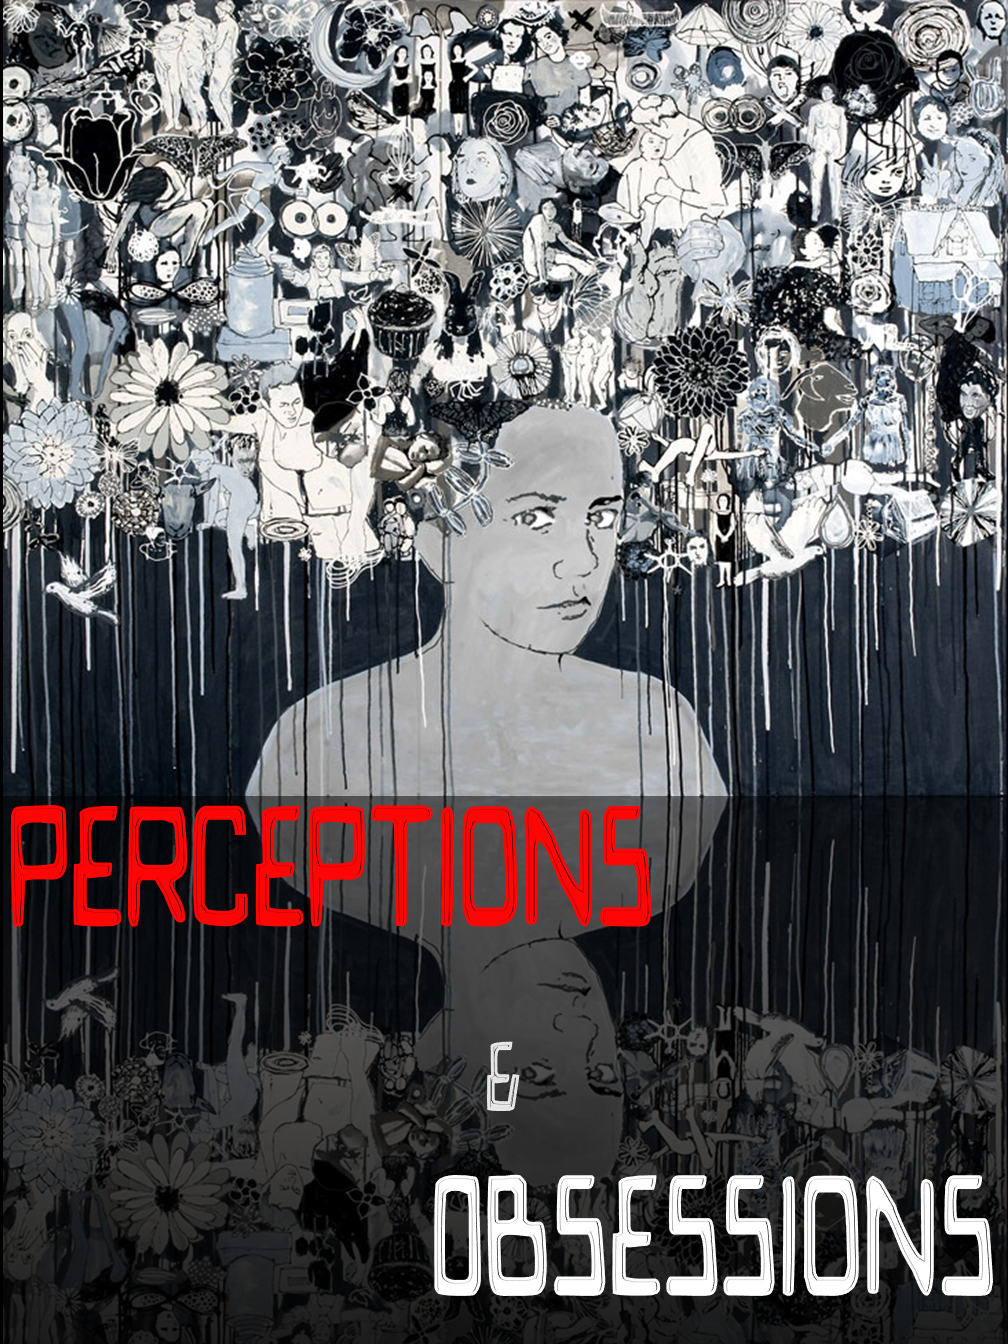 Perceptions&Obsessions